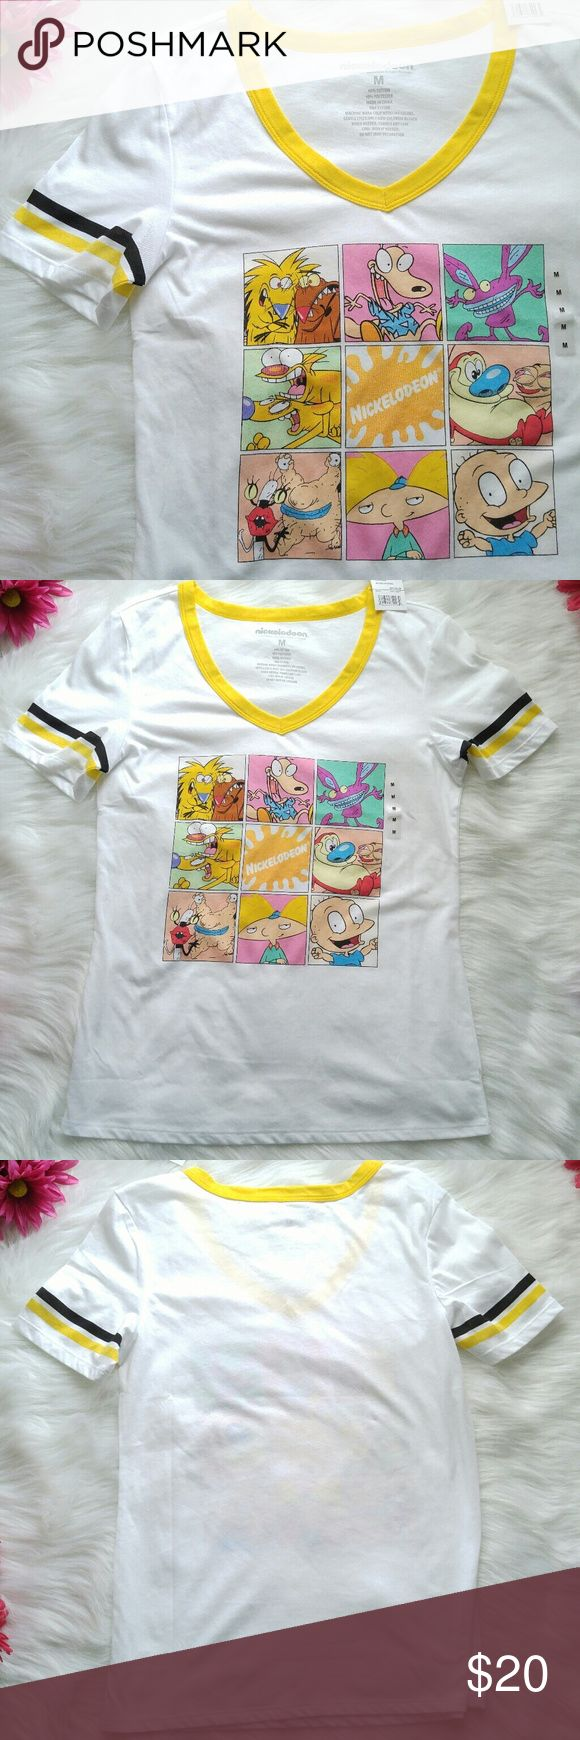 NWT 90s Nickelodeon cartoons tee shirt M Rugrats Rad T shirt with 90s Nicktoons screenprint! Size medium. Brand new with tags! Lightweight, sheer white cotton/poly blend with yellow piping at sleeves and neckline. Smoke free home:) Aah real monsters- Ren and Stimpy - Rugrats - Angry Beavers - Rocko's Modern Life - Hey Arnold - CatDog!  8588nick7d5e Nickelodeon Tops Tees - Short Sleeve